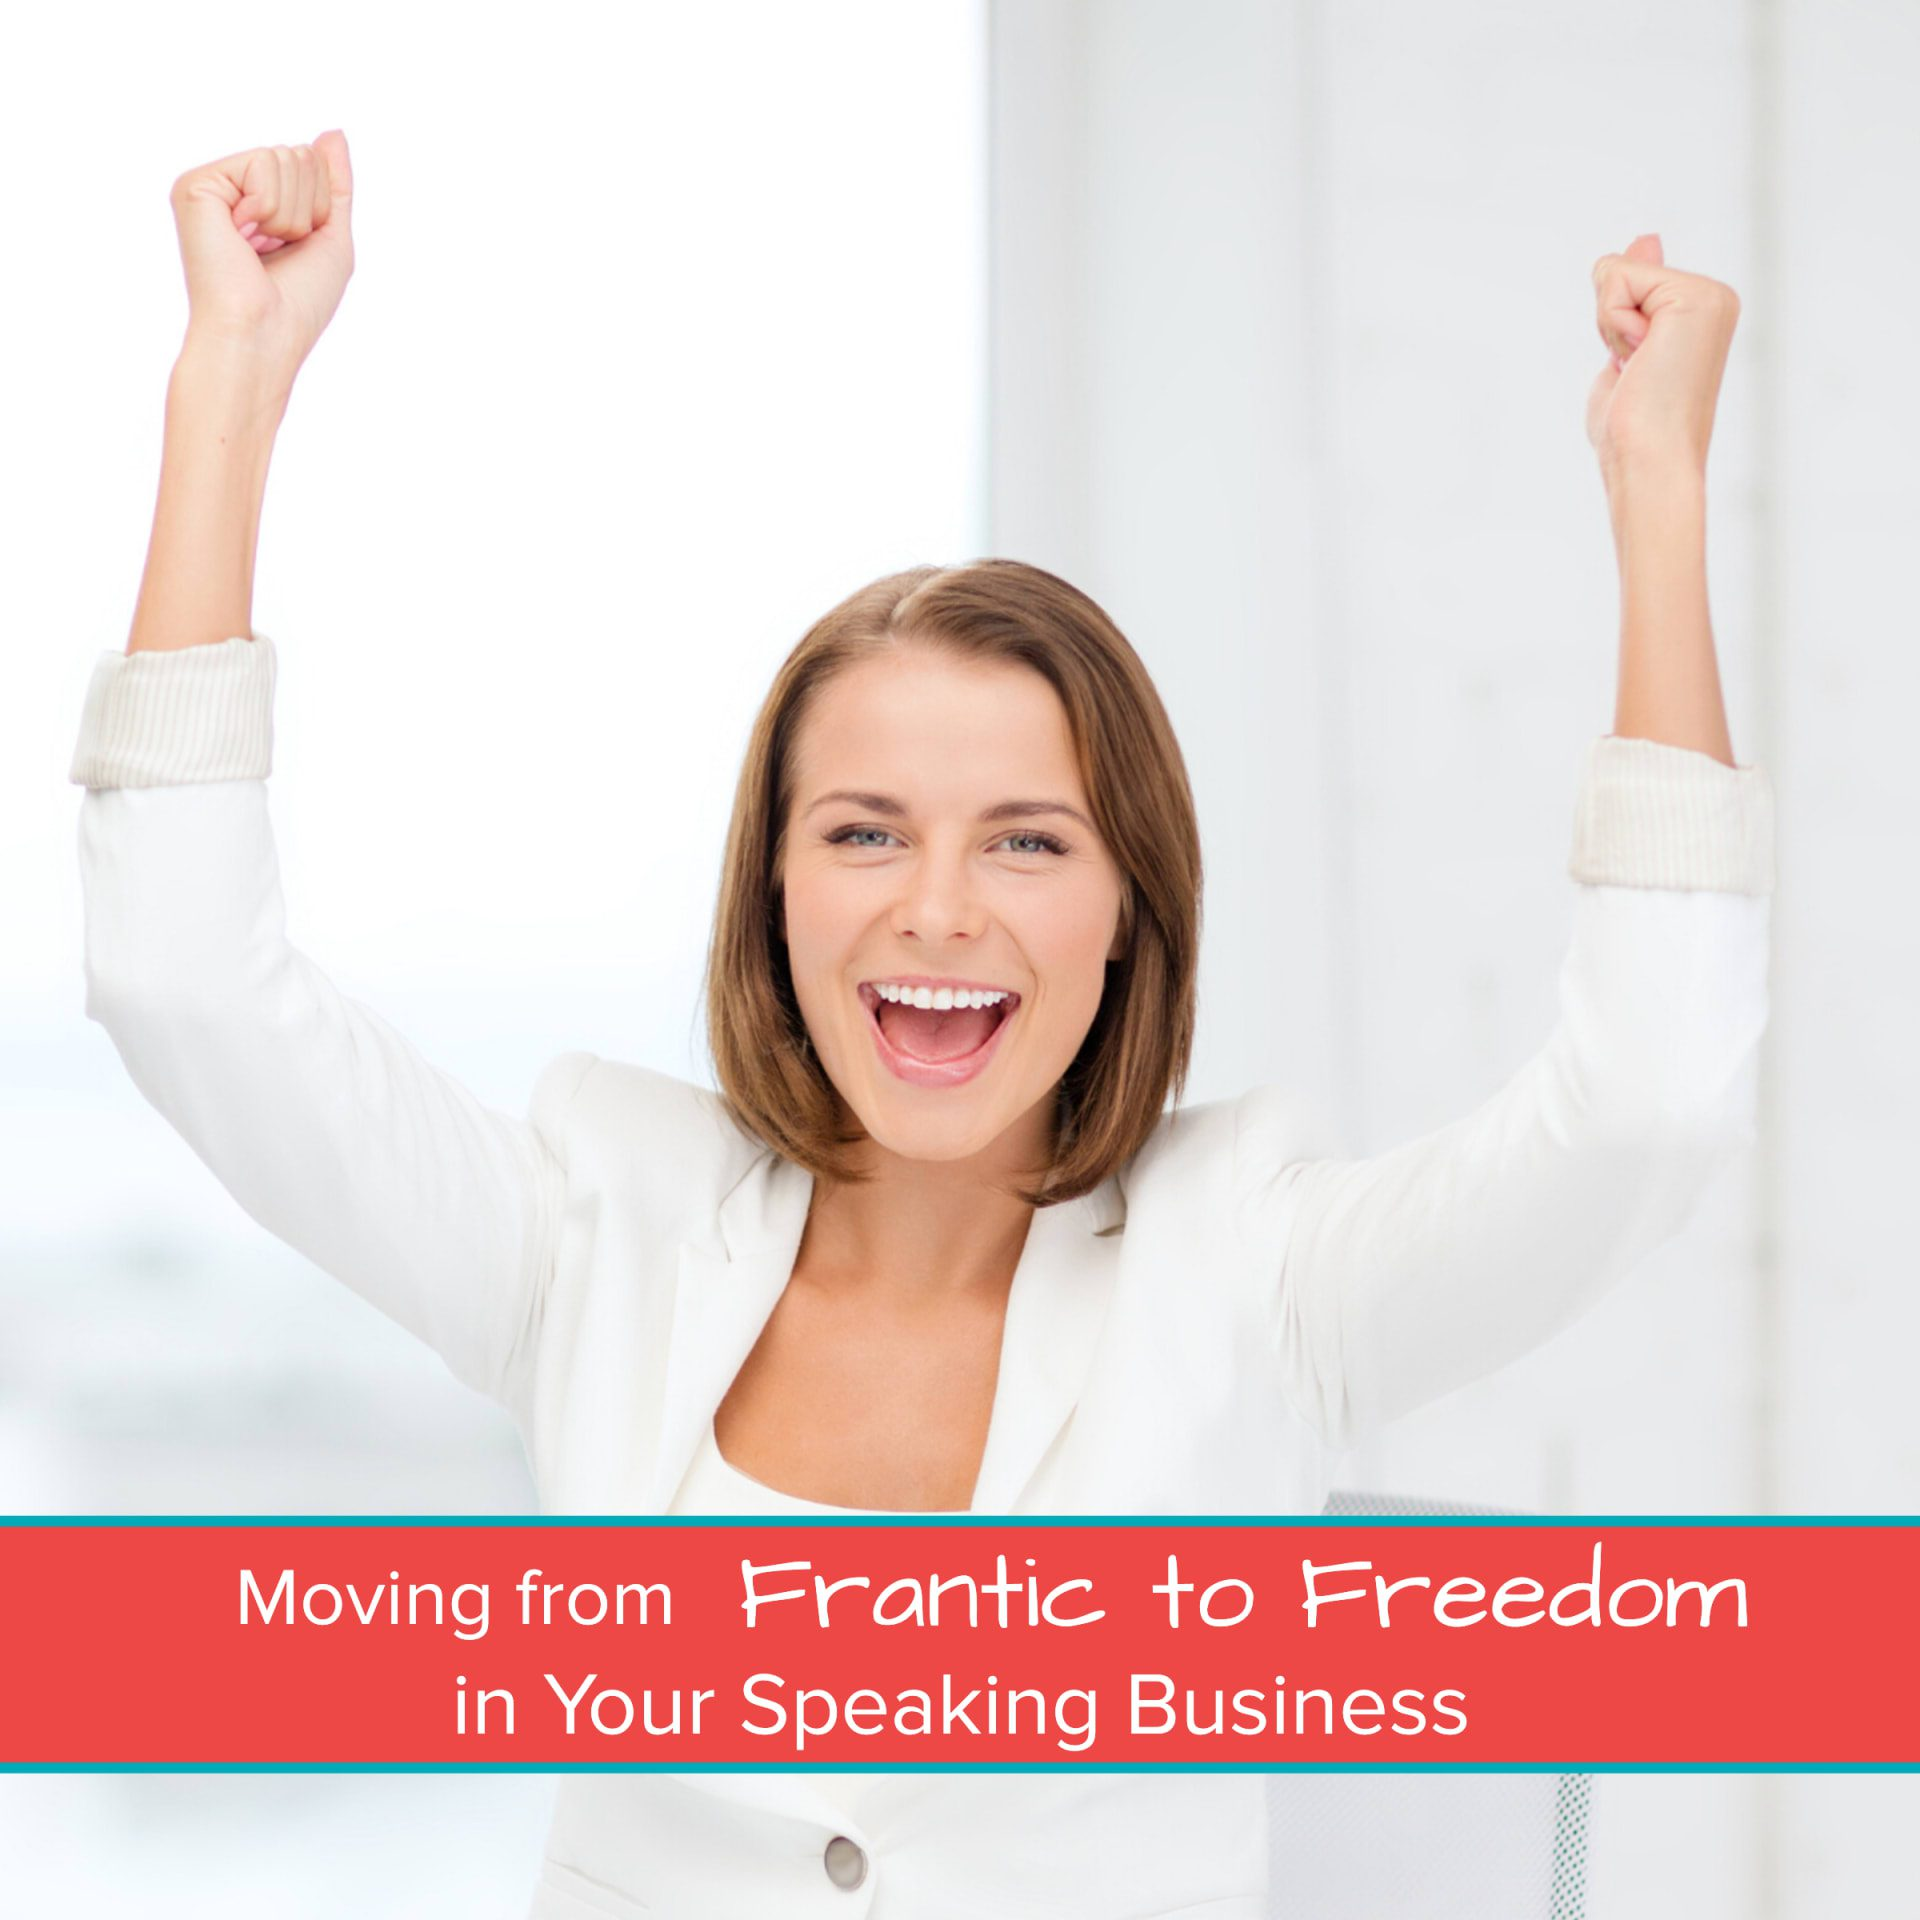 Moving from Frantic to Freedom in Your Speaking Business 1200 x 1200